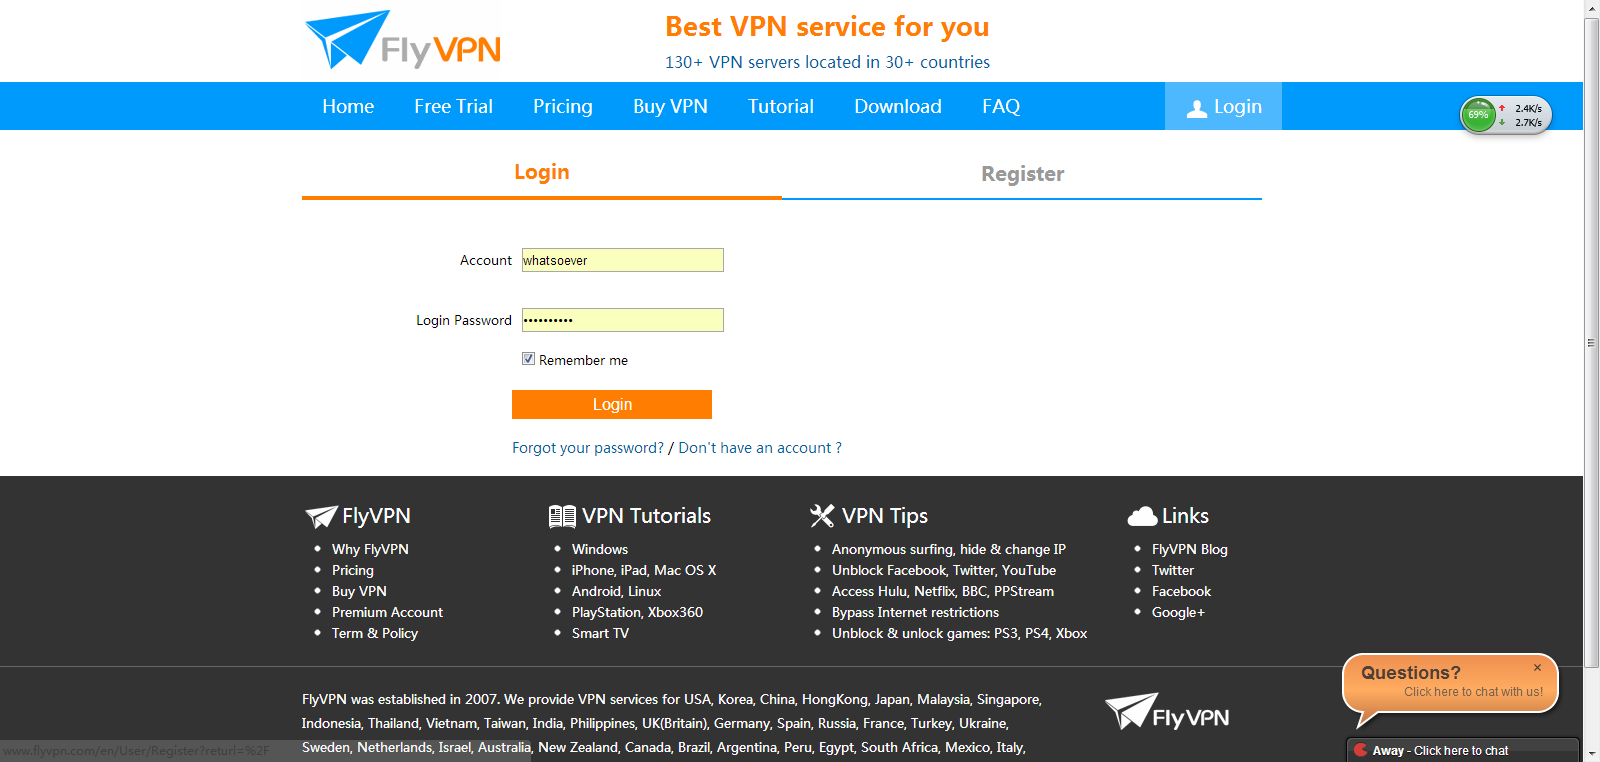 Register your own account for FlyVPN